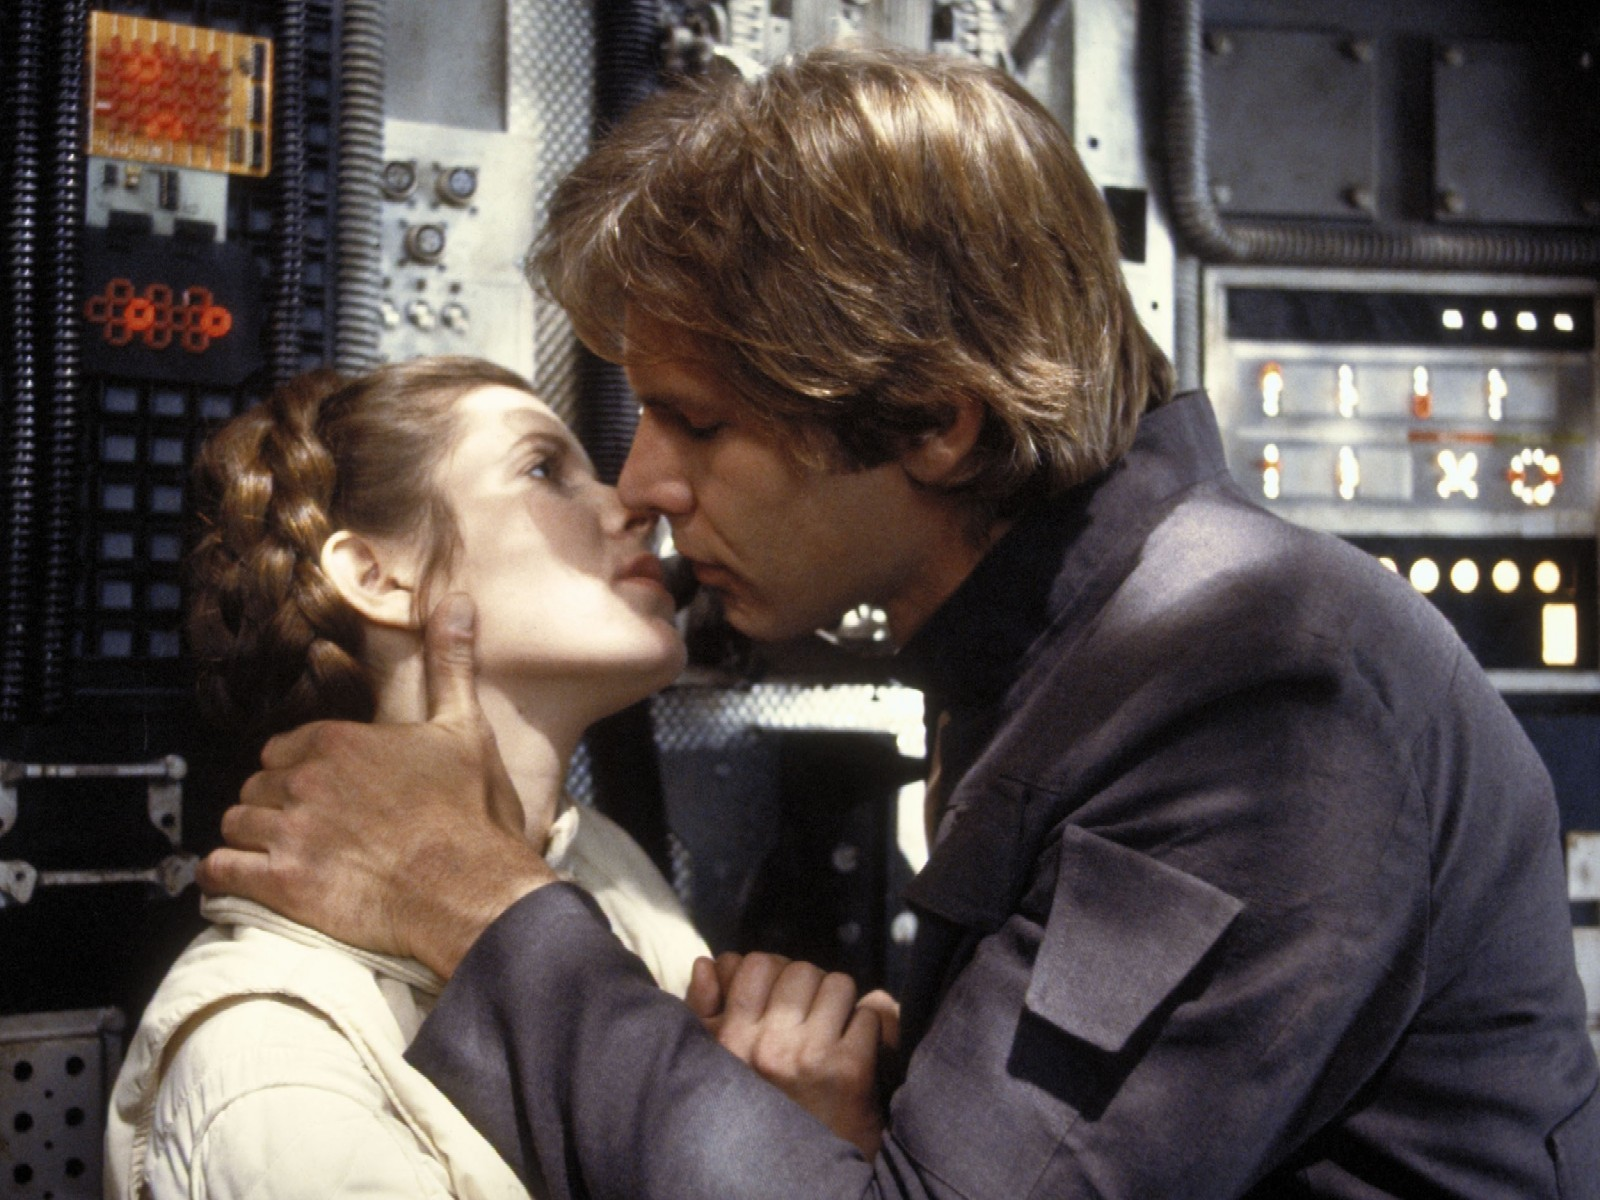 Han and Leia were quite the couple in the original Star Wars films.